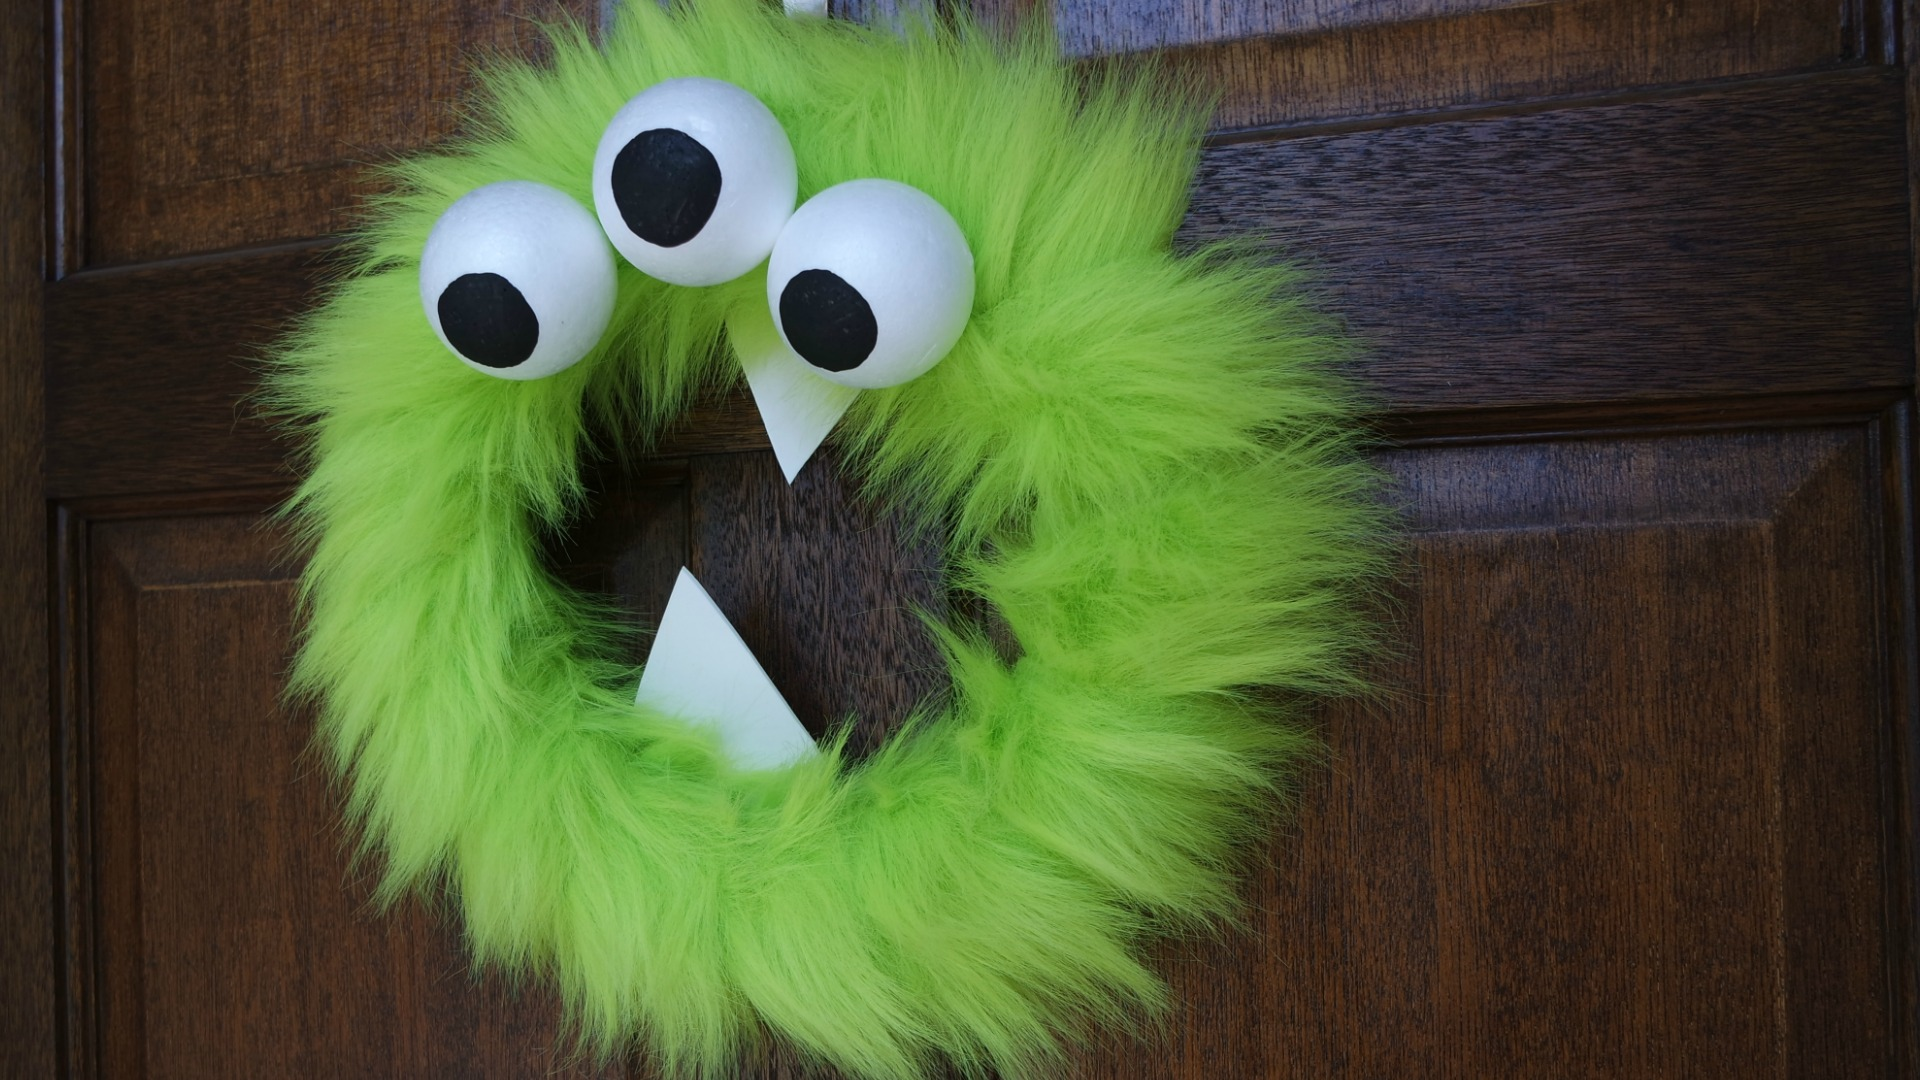 Monster Halloween Wreath Tutorial - how to make a Halloween wreath, perfect for decorating your door for Halloween or a monster birthday party